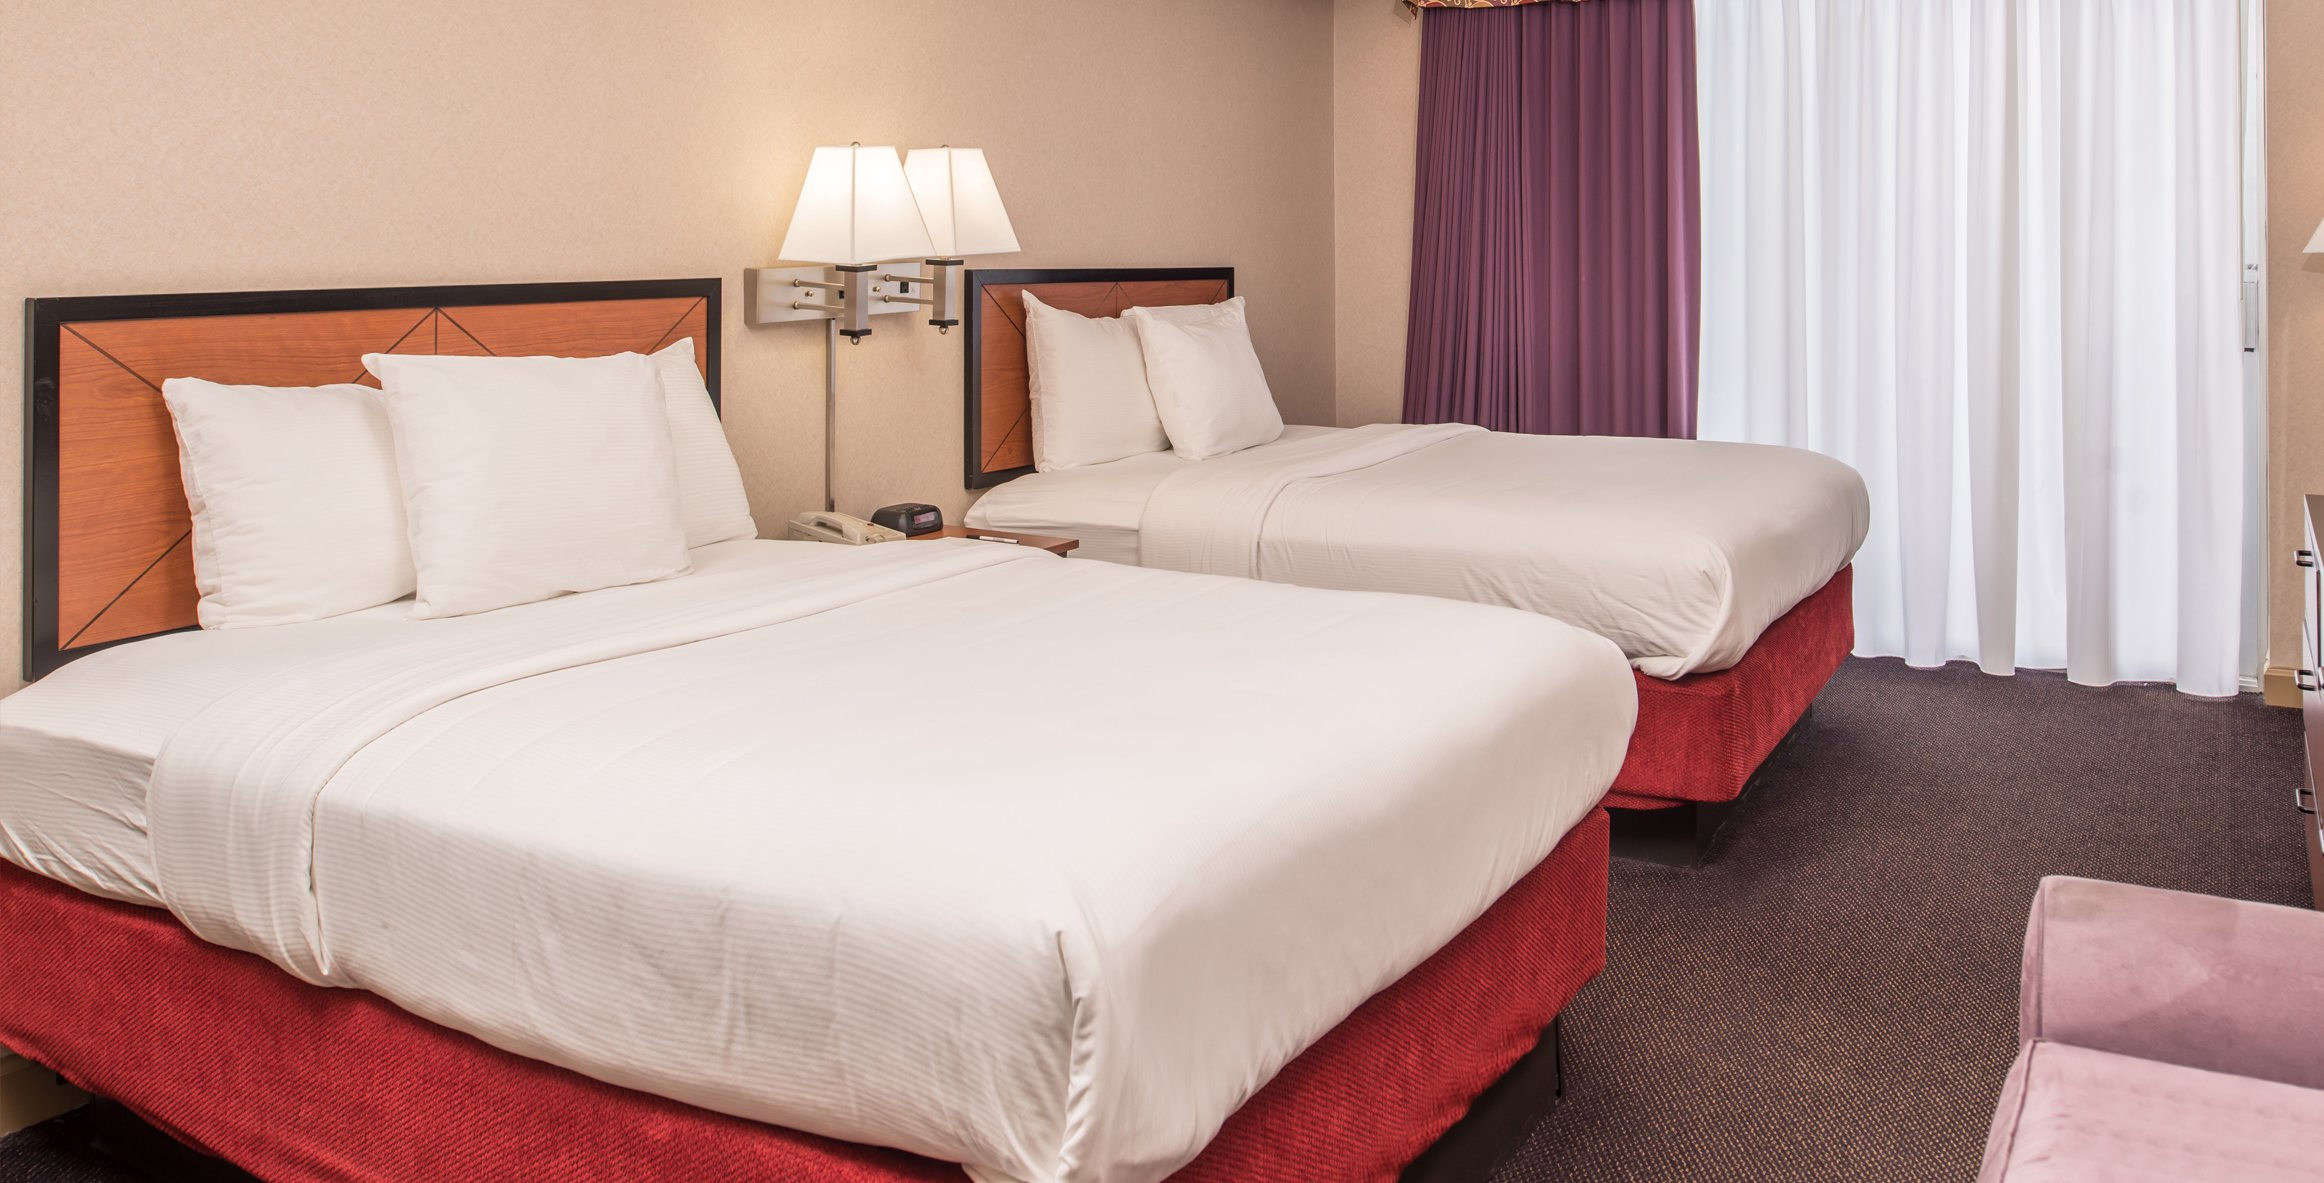 TAKE ADVANTAGE OF WINSTON-SALEM'S PREMIERE HOTEL LODGING AND ACCOMMODATIONS